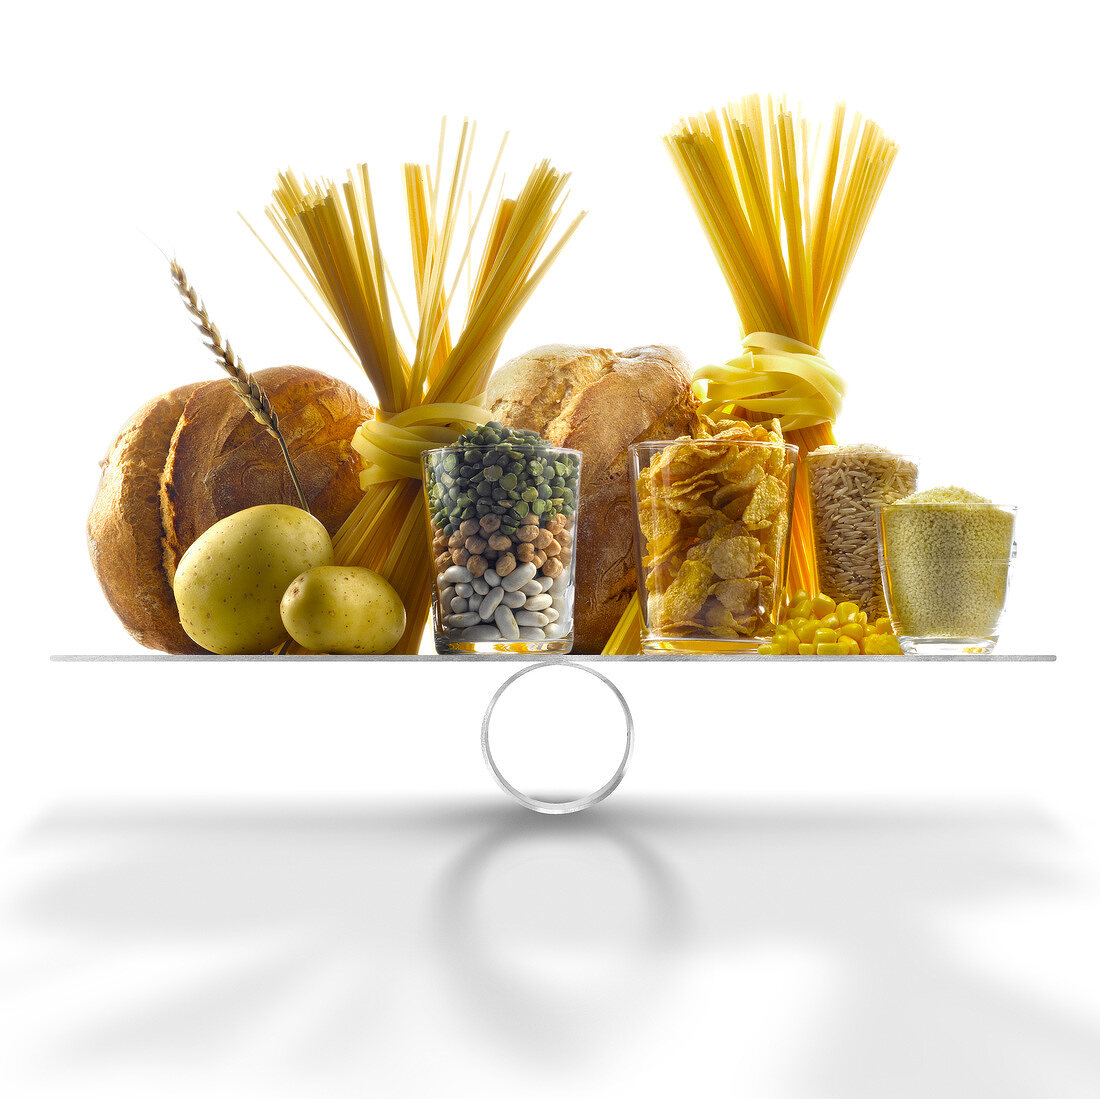 Selection of products with a high level of carbohydrates on scales